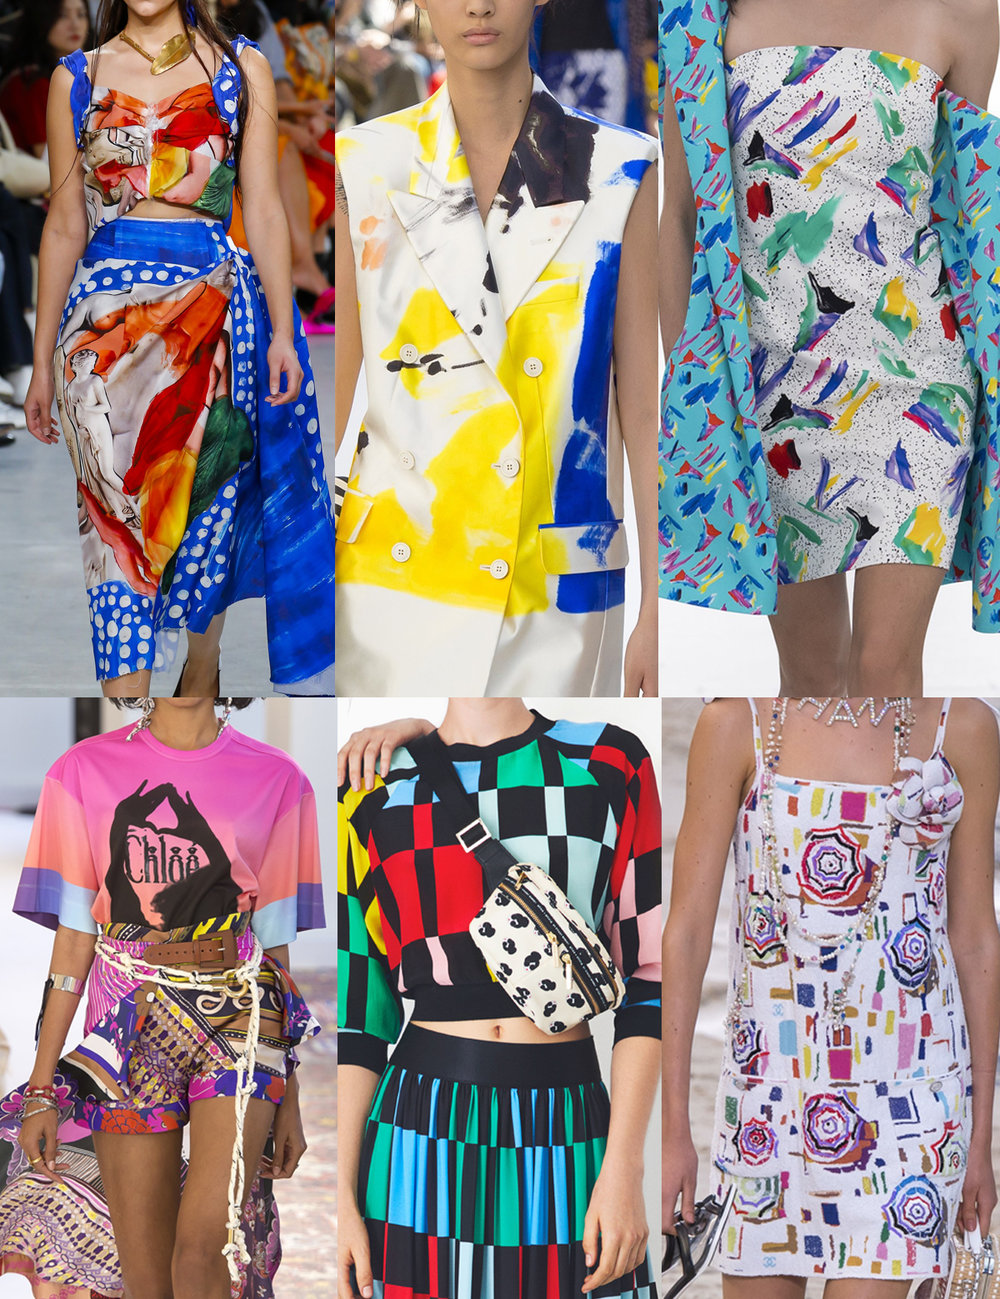 Spring 2019 - Marni, Dries van Noten, Louis Vuitton, Chloe, Alice and Olivia, Chanel